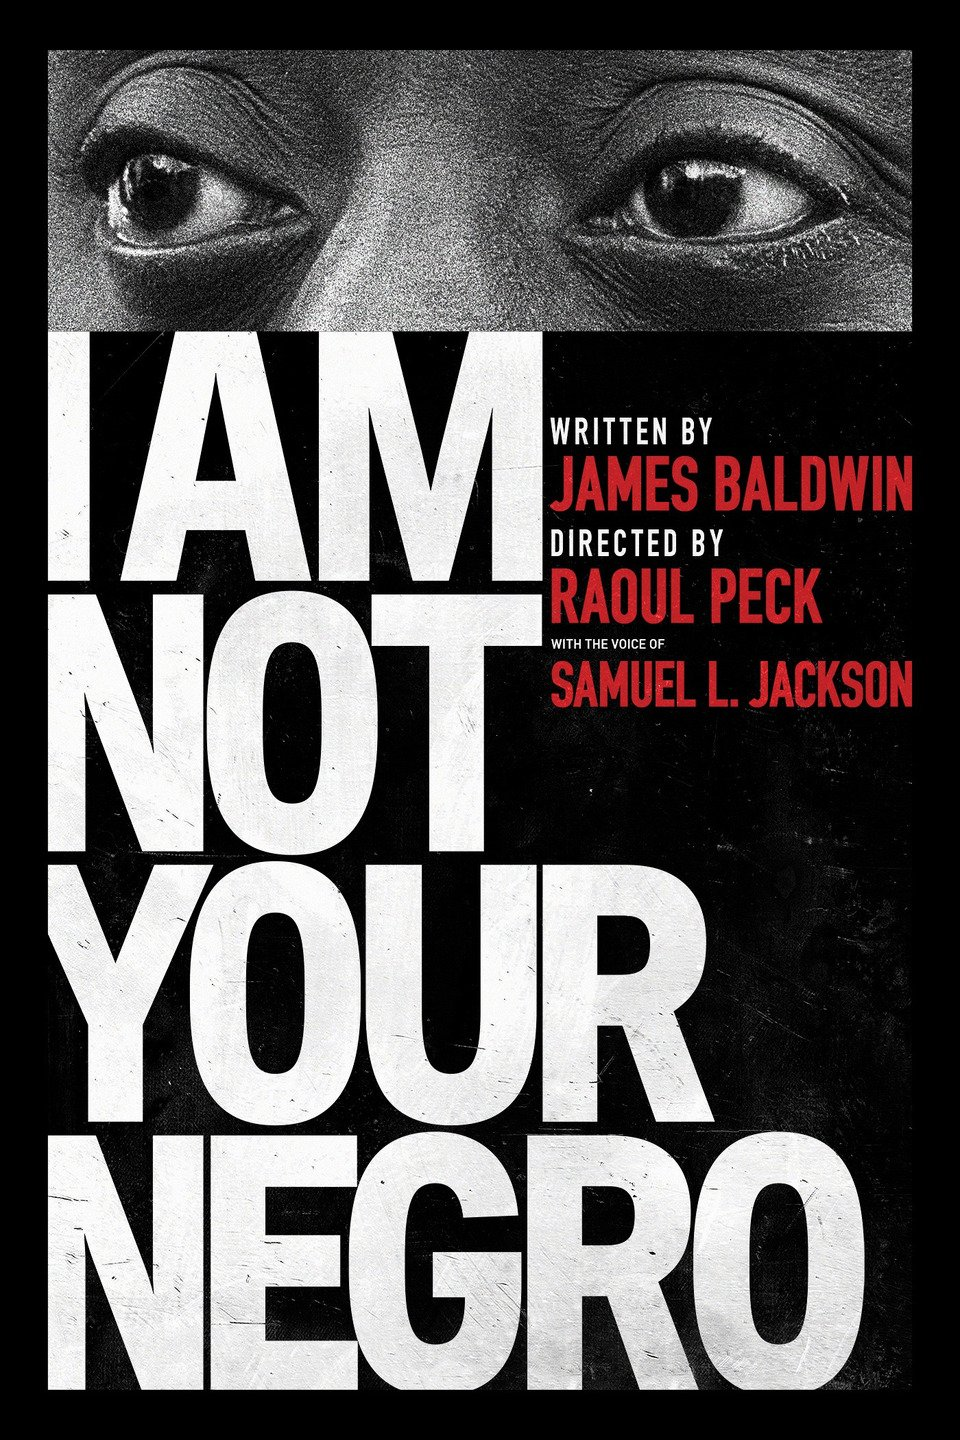 photo of james baldwin, with TITLE UNDERNEATH